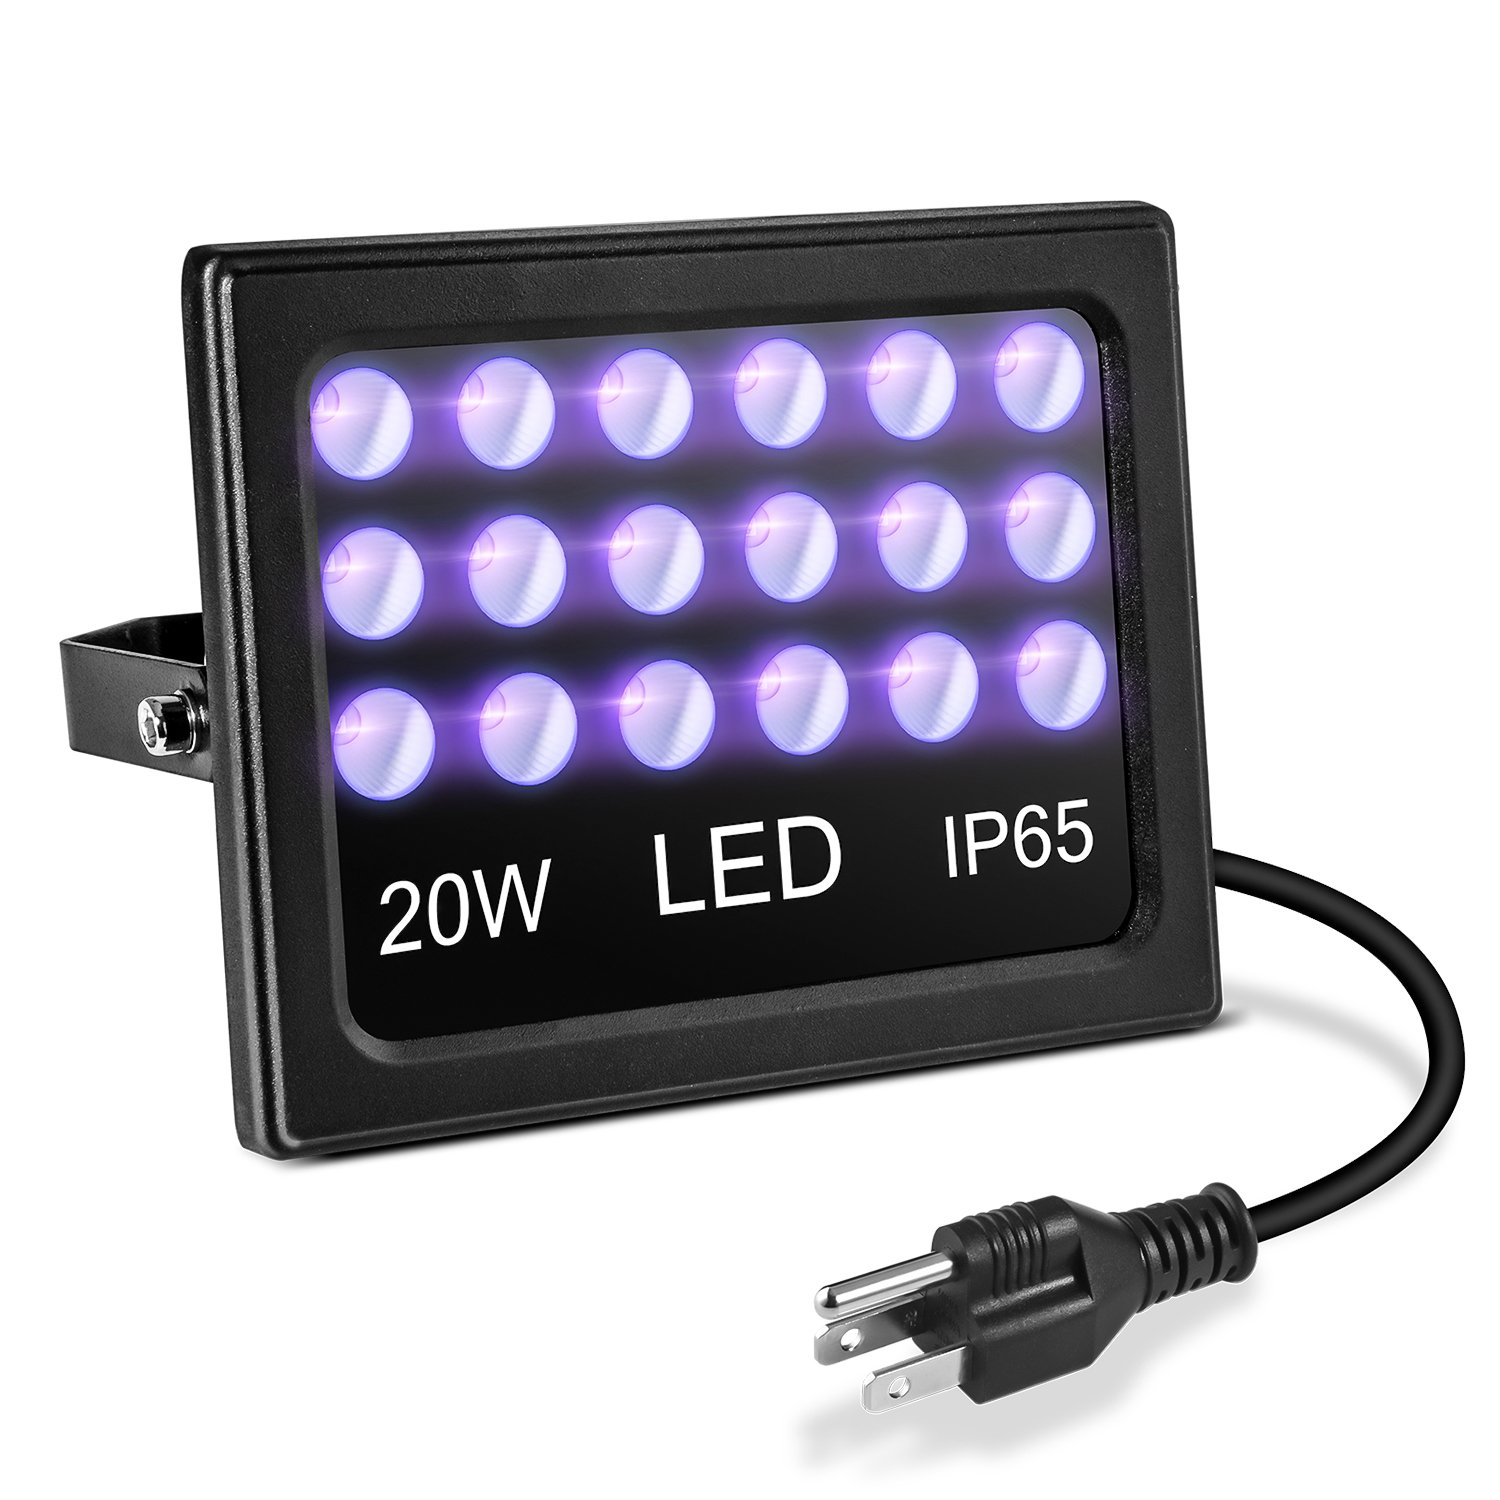 Afanty 20W LED Blacklight, with US Plug, 395nm Ultraviolet LED Black Light, IP65 Waterproof UV Light, UV Spotlight for Party, Fluorescent Paint.